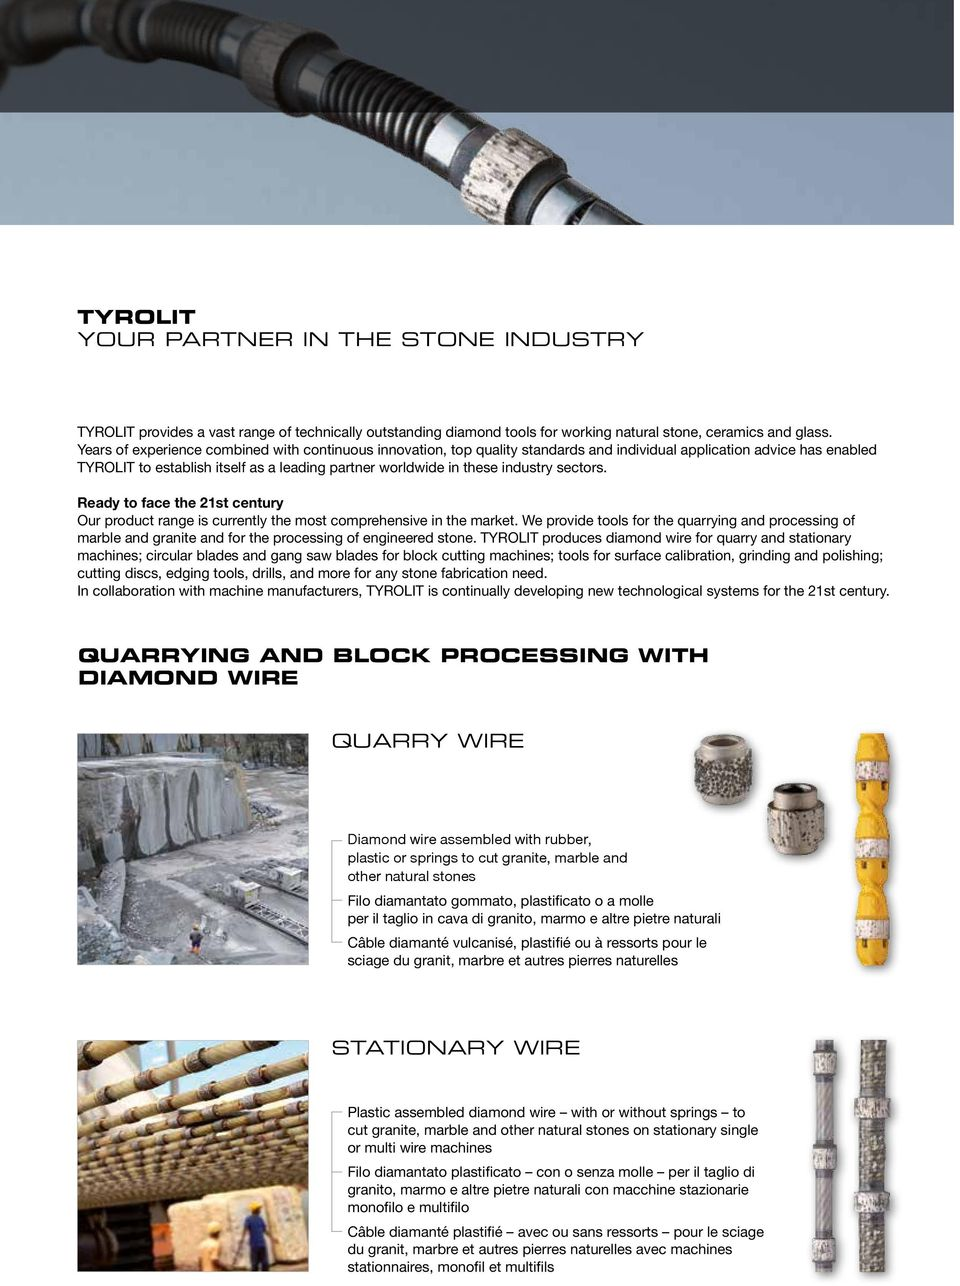 industry sectors. Ready to face the 21st century Our product range is currently the most comprehensive in the market.